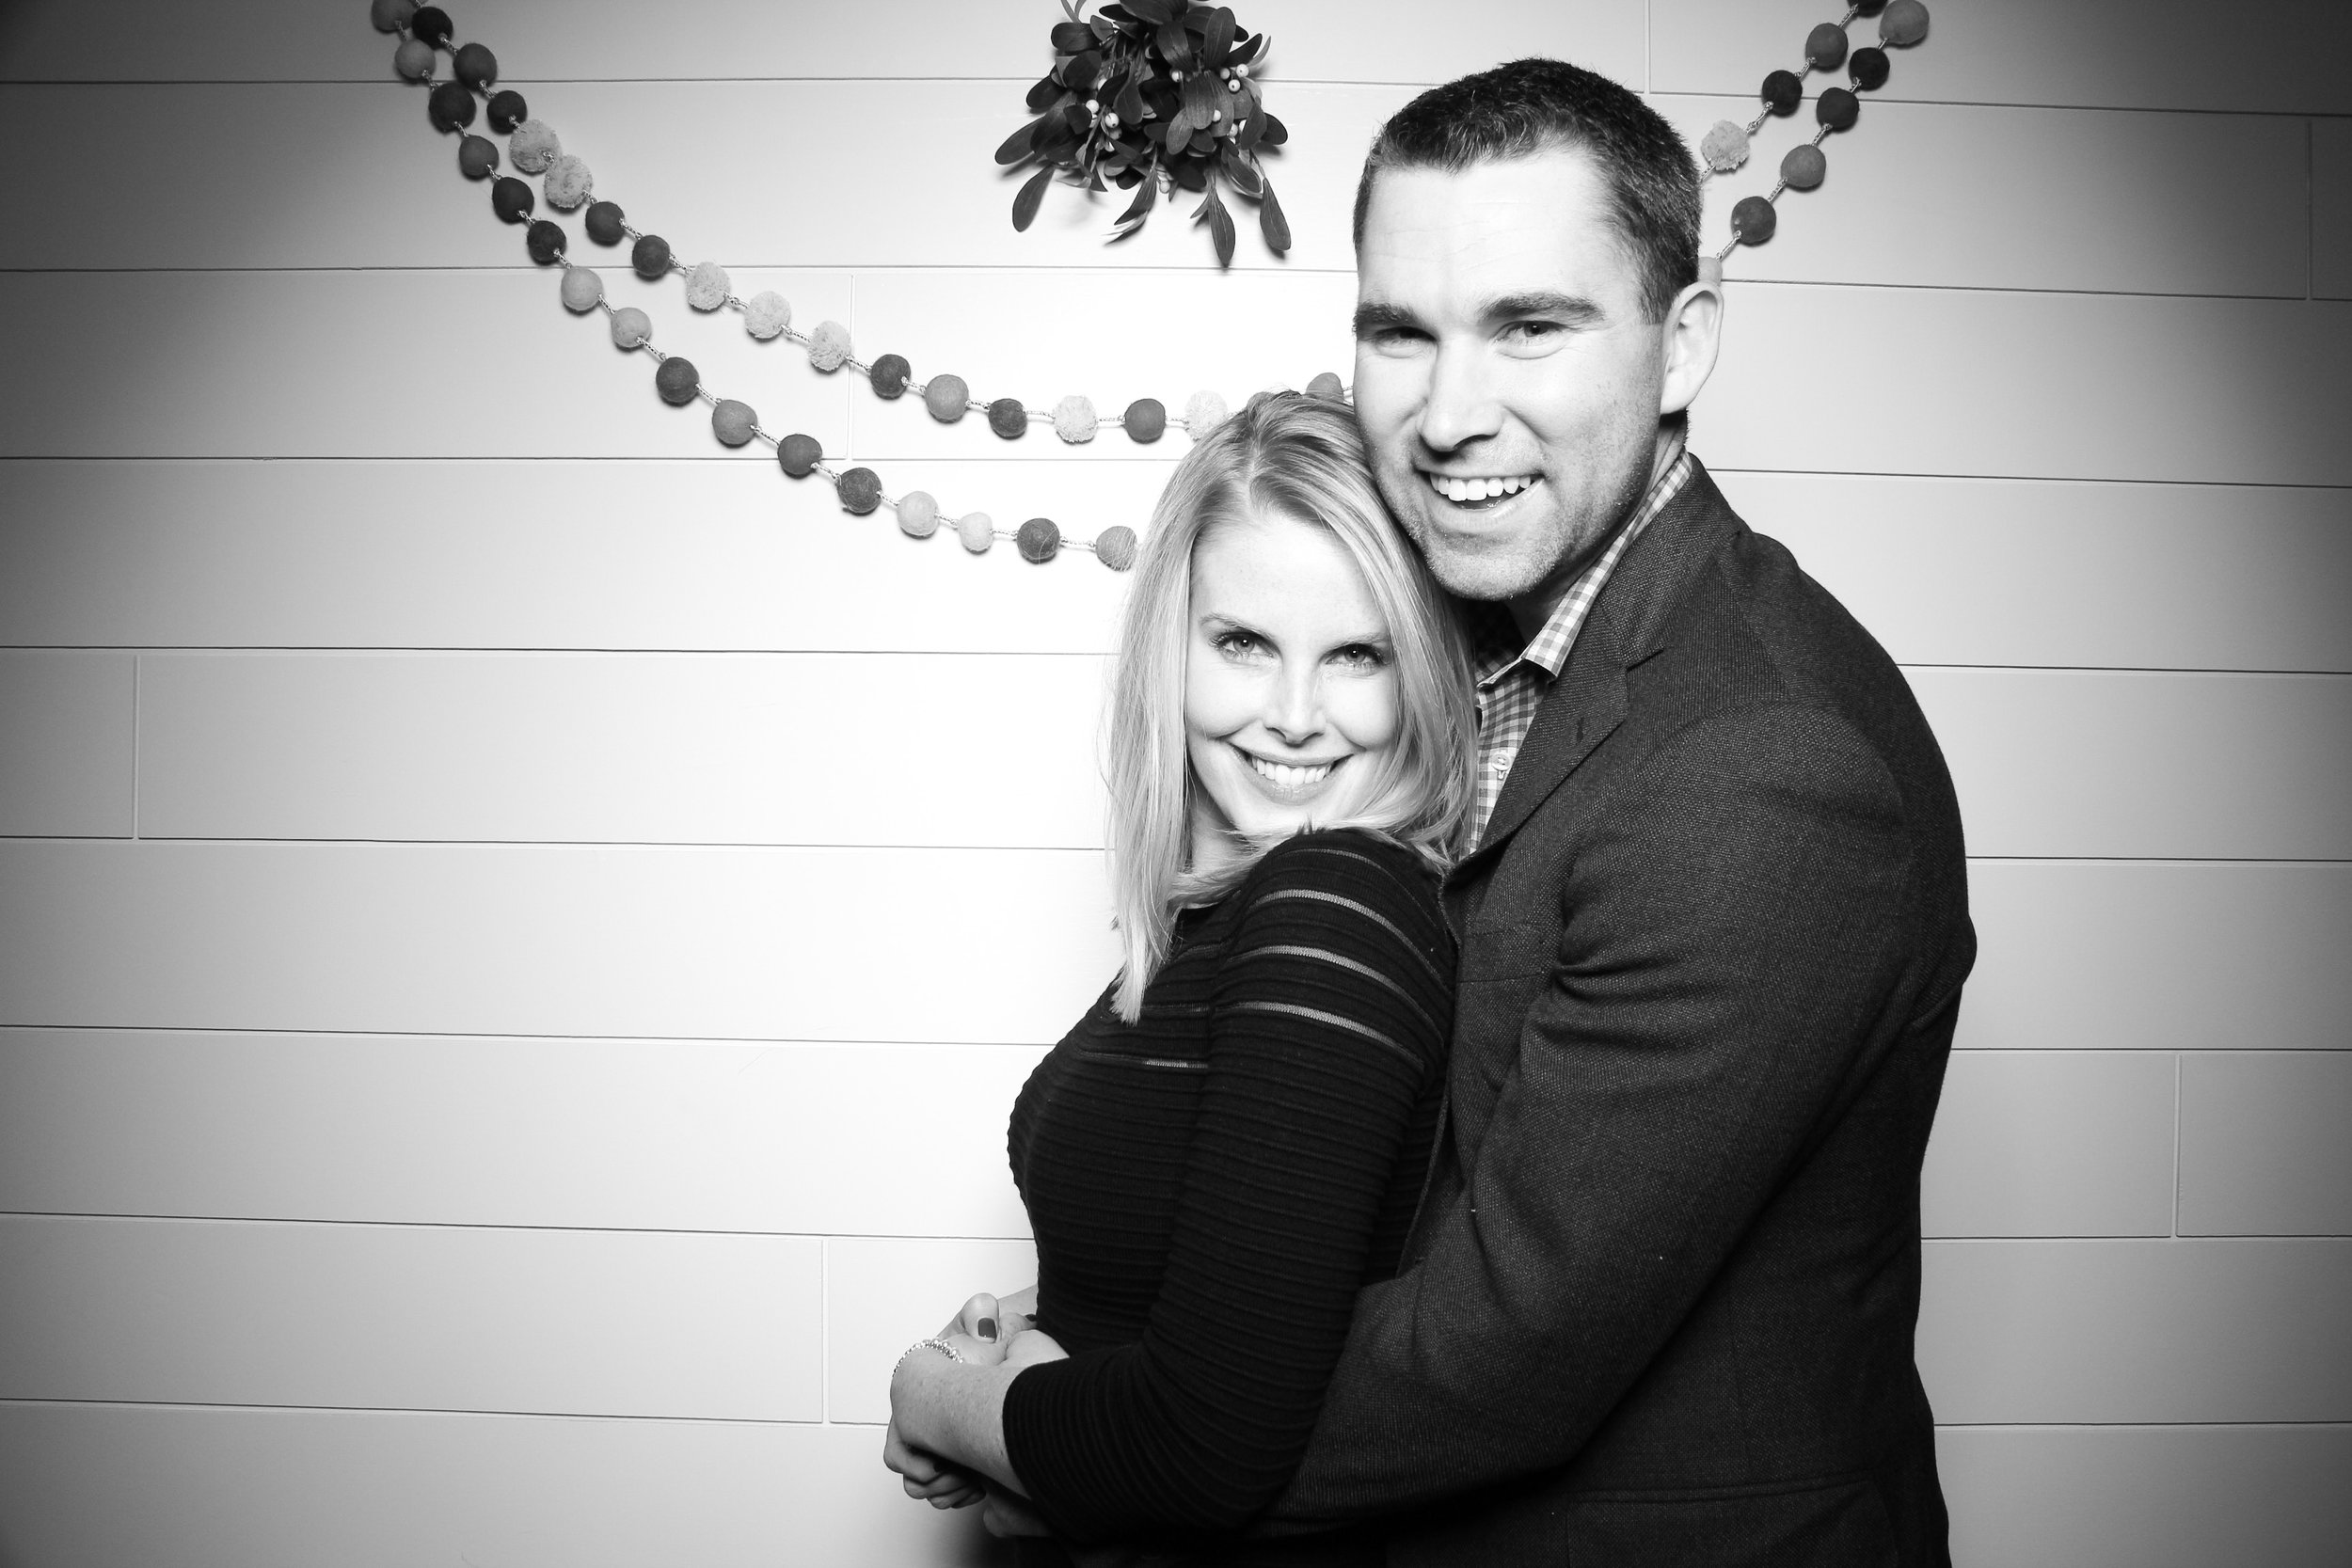 Chicago_Vintage_Photobooth_Christmas_Holiday_Party_26.jpg